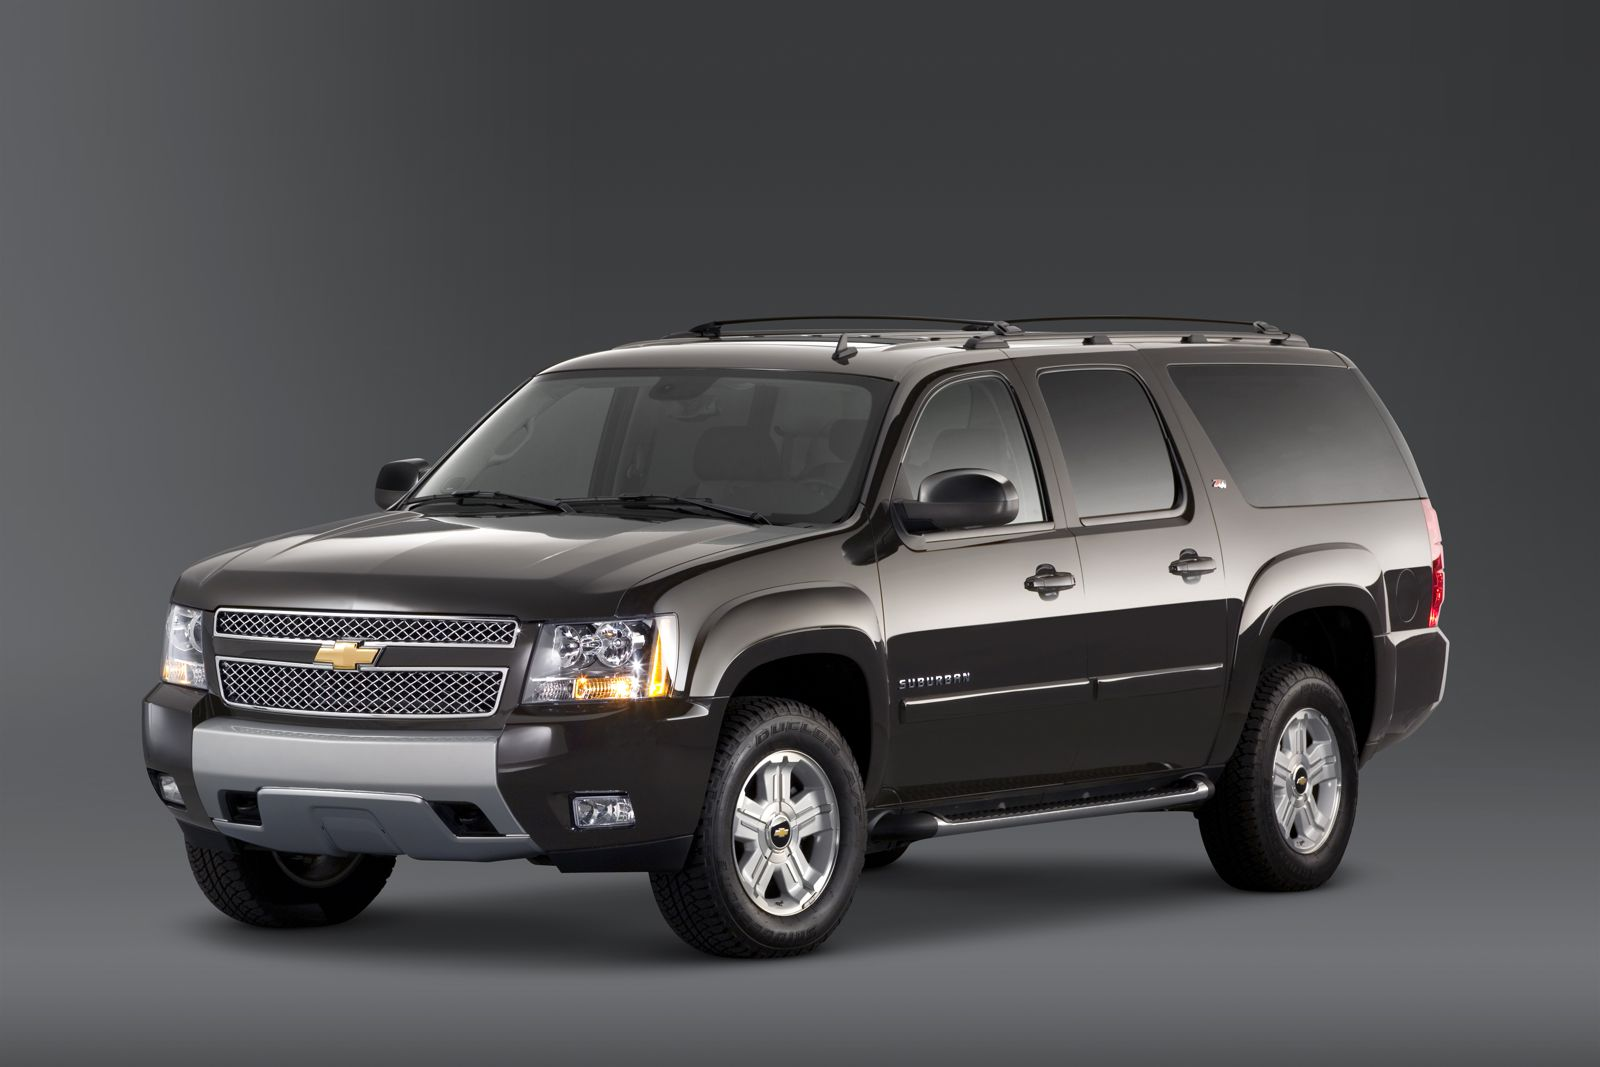 2012 chevrolet suburban chevy review ratings specs prices and photos the car connection. Black Bedroom Furniture Sets. Home Design Ideas